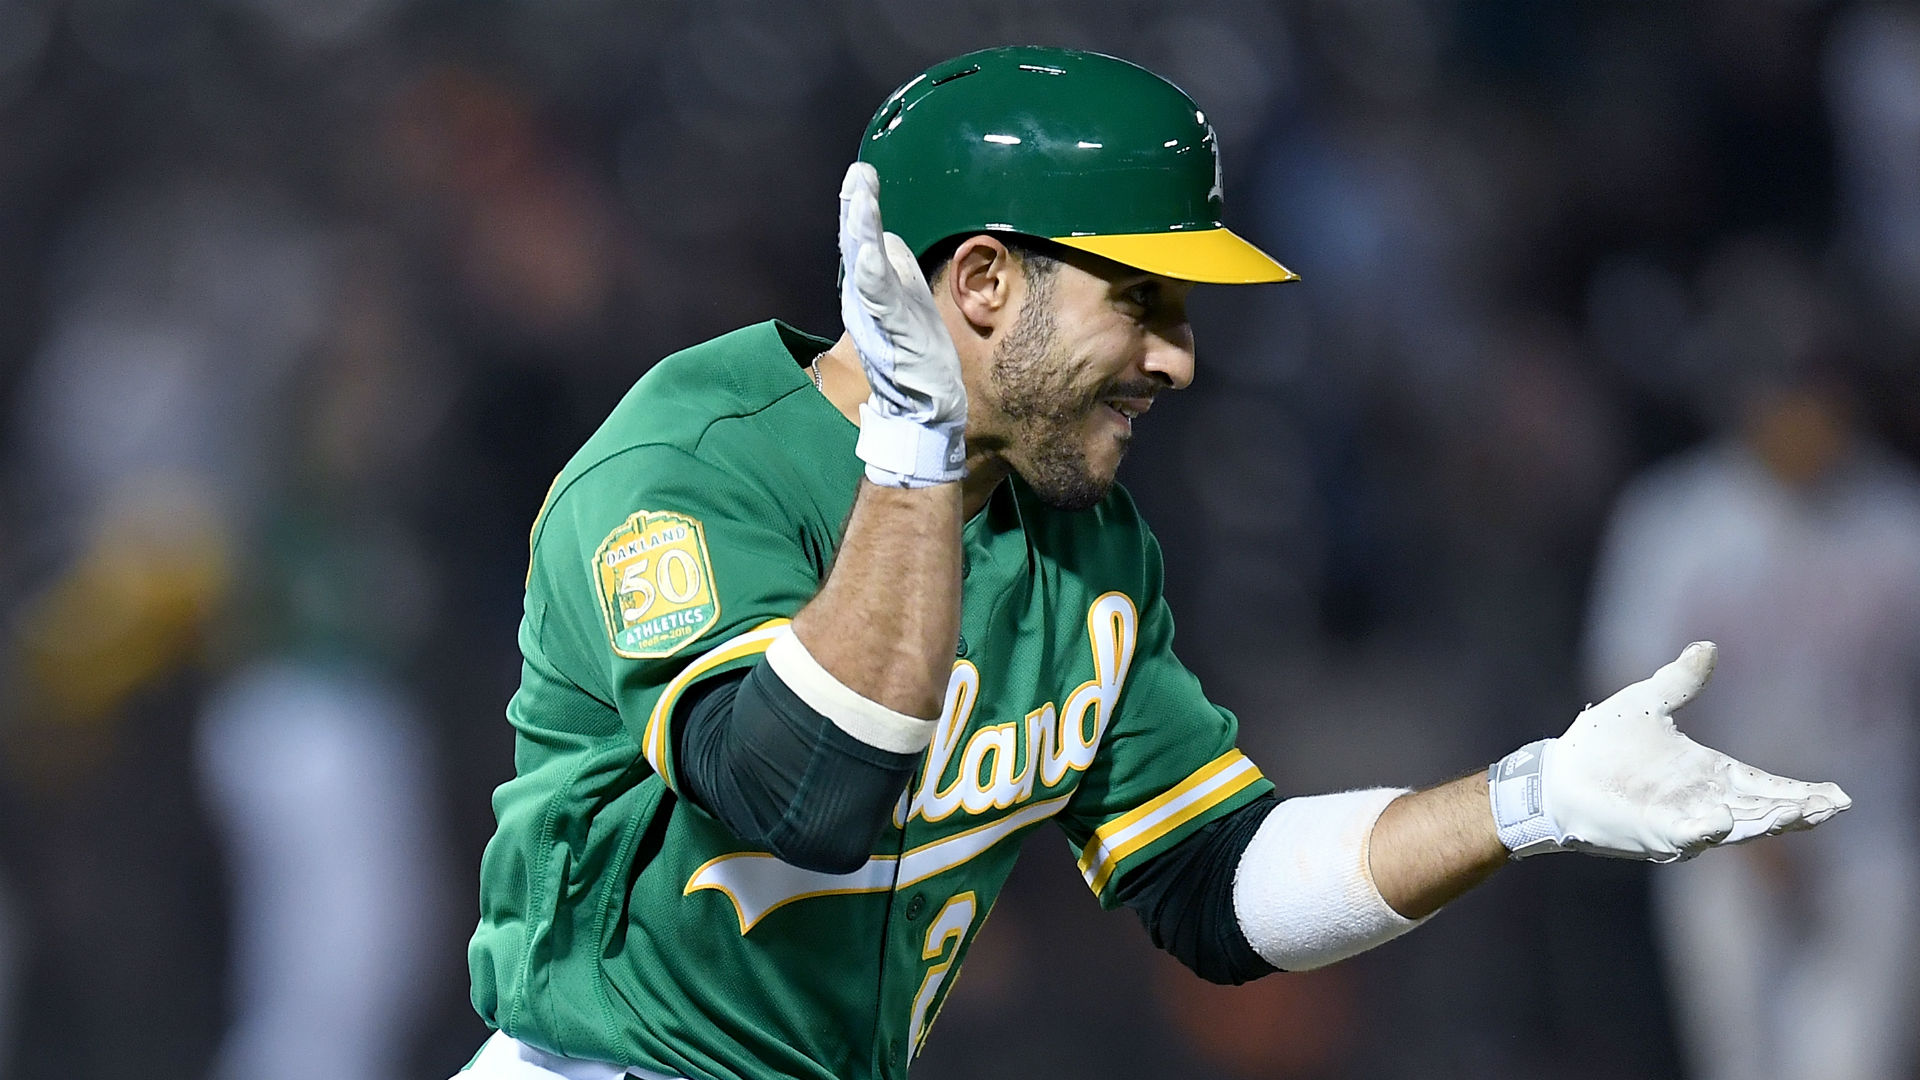 Ramon Laureano executes 321-foot throw to complete double play